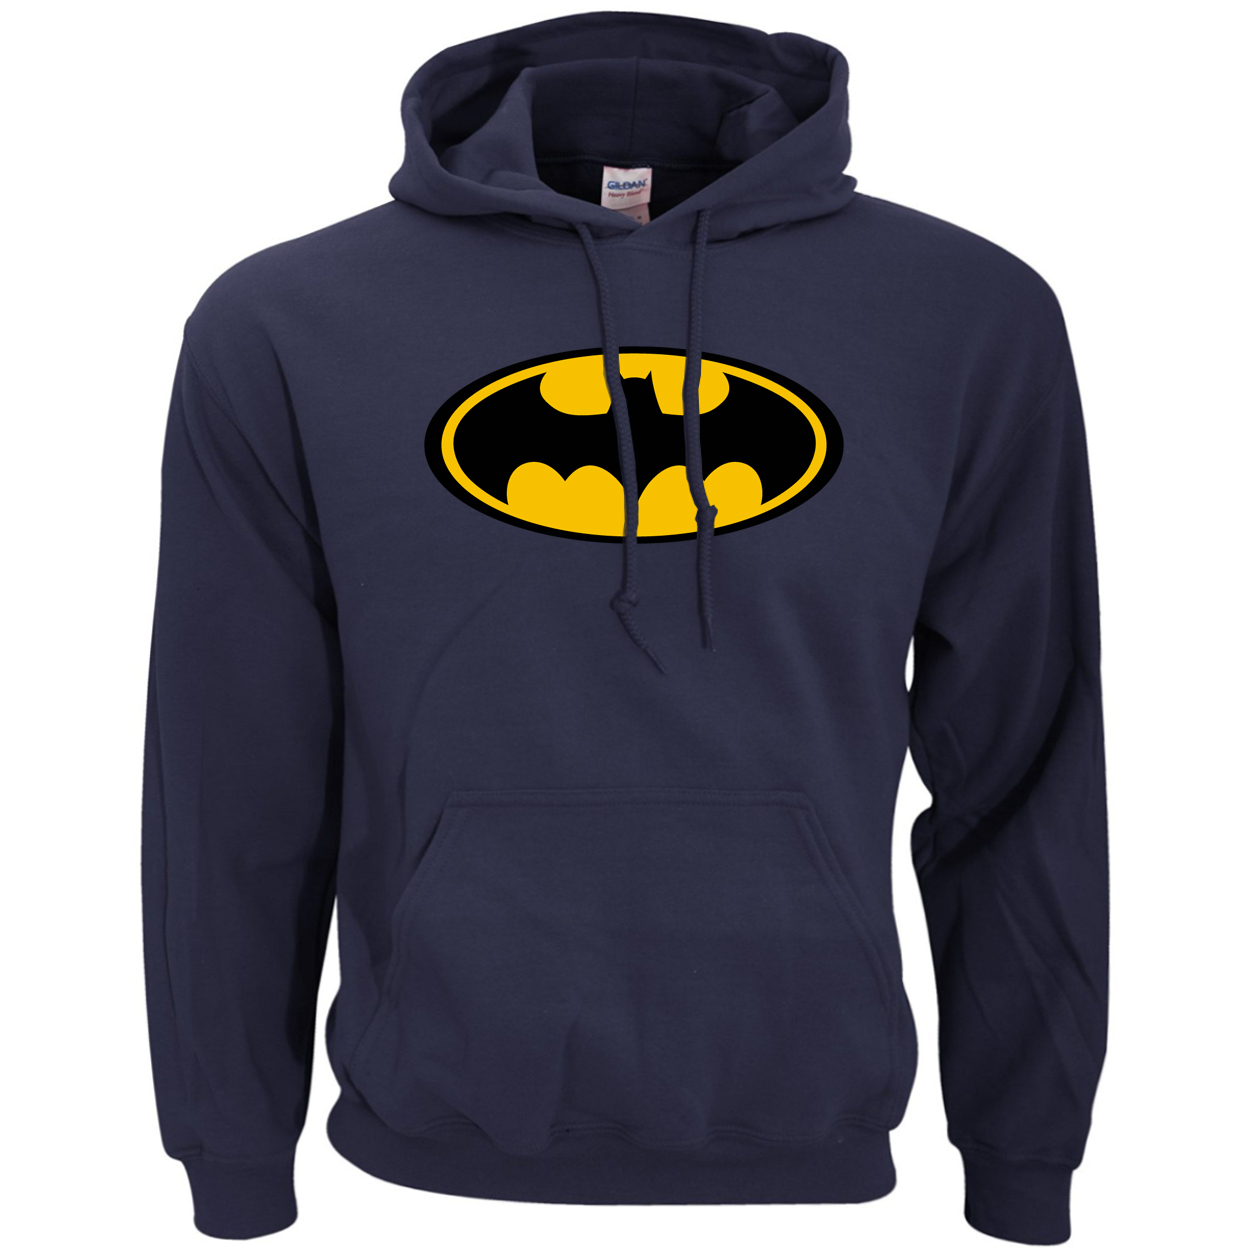 For Fans Superman Series Batman Sweatshirt 2020 Autumn  Winter   Print Casual Hoodies Men Fleece Hoodie Men's Sportswear